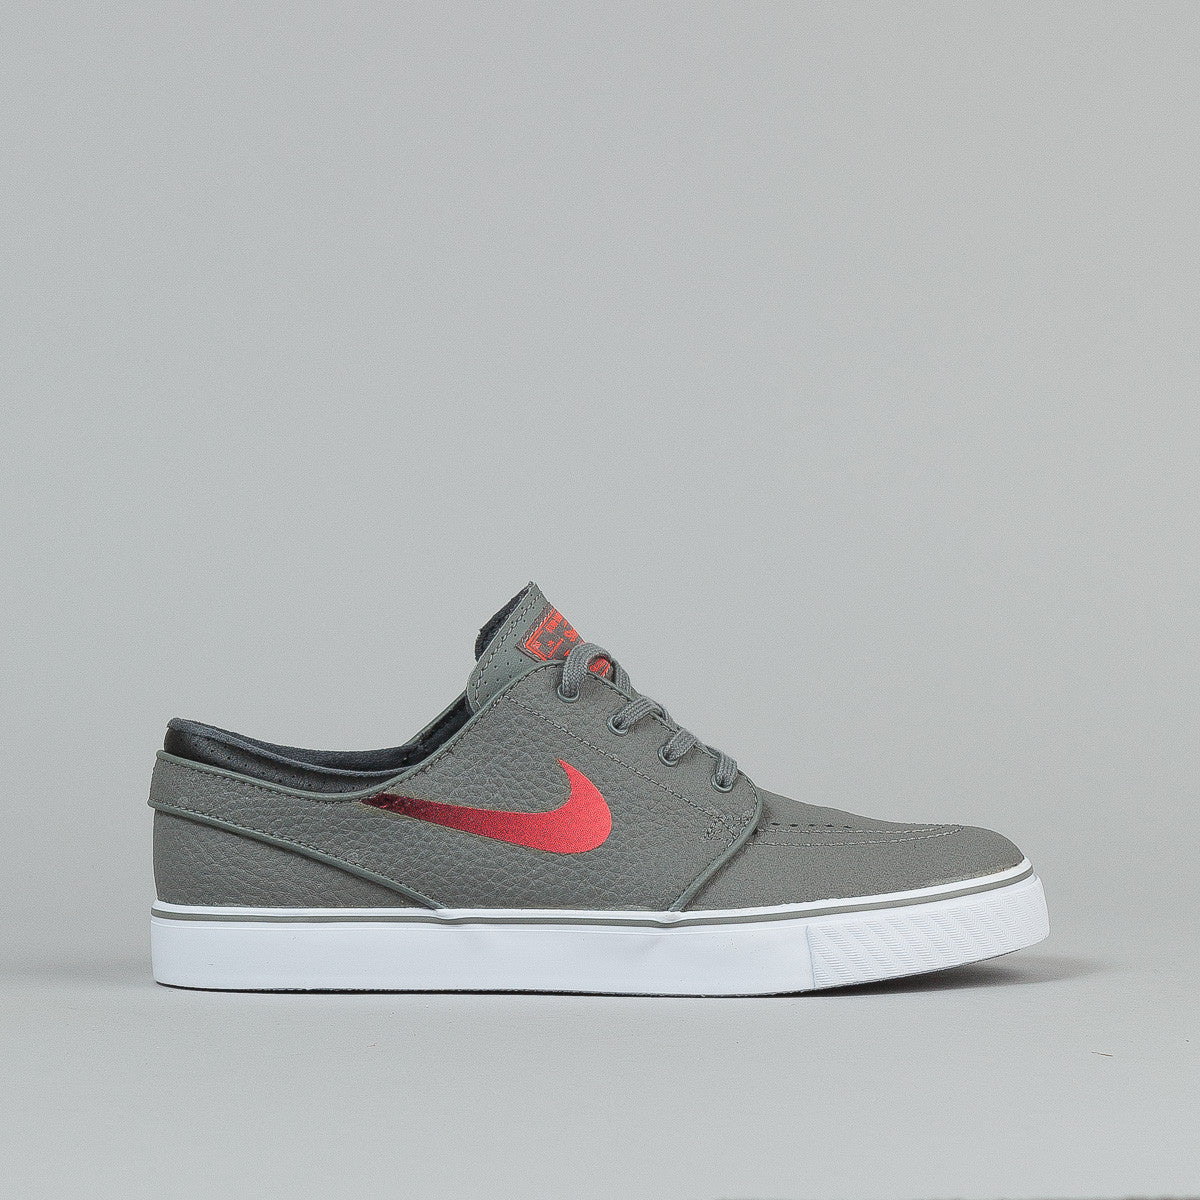 Nike SB Stefan Janoski L Medium Base Grey / Laser Crimson